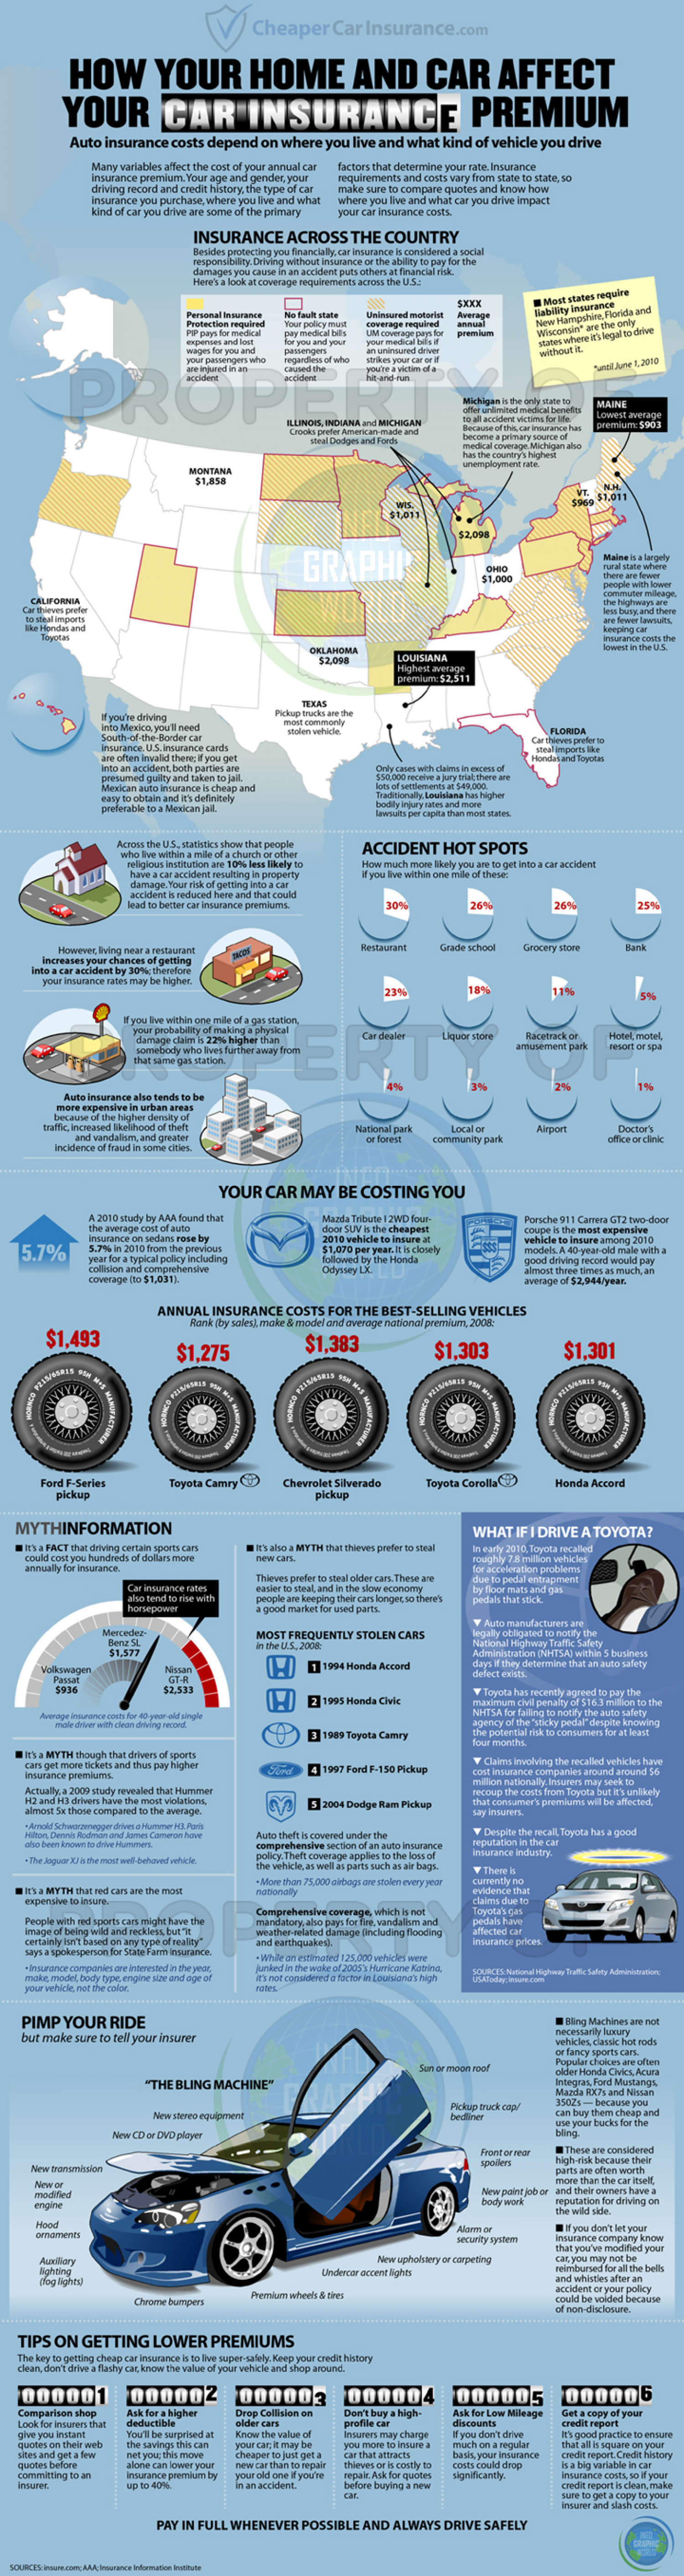 How Your Home and Car Affect Your Car Insurance Premium Infographic